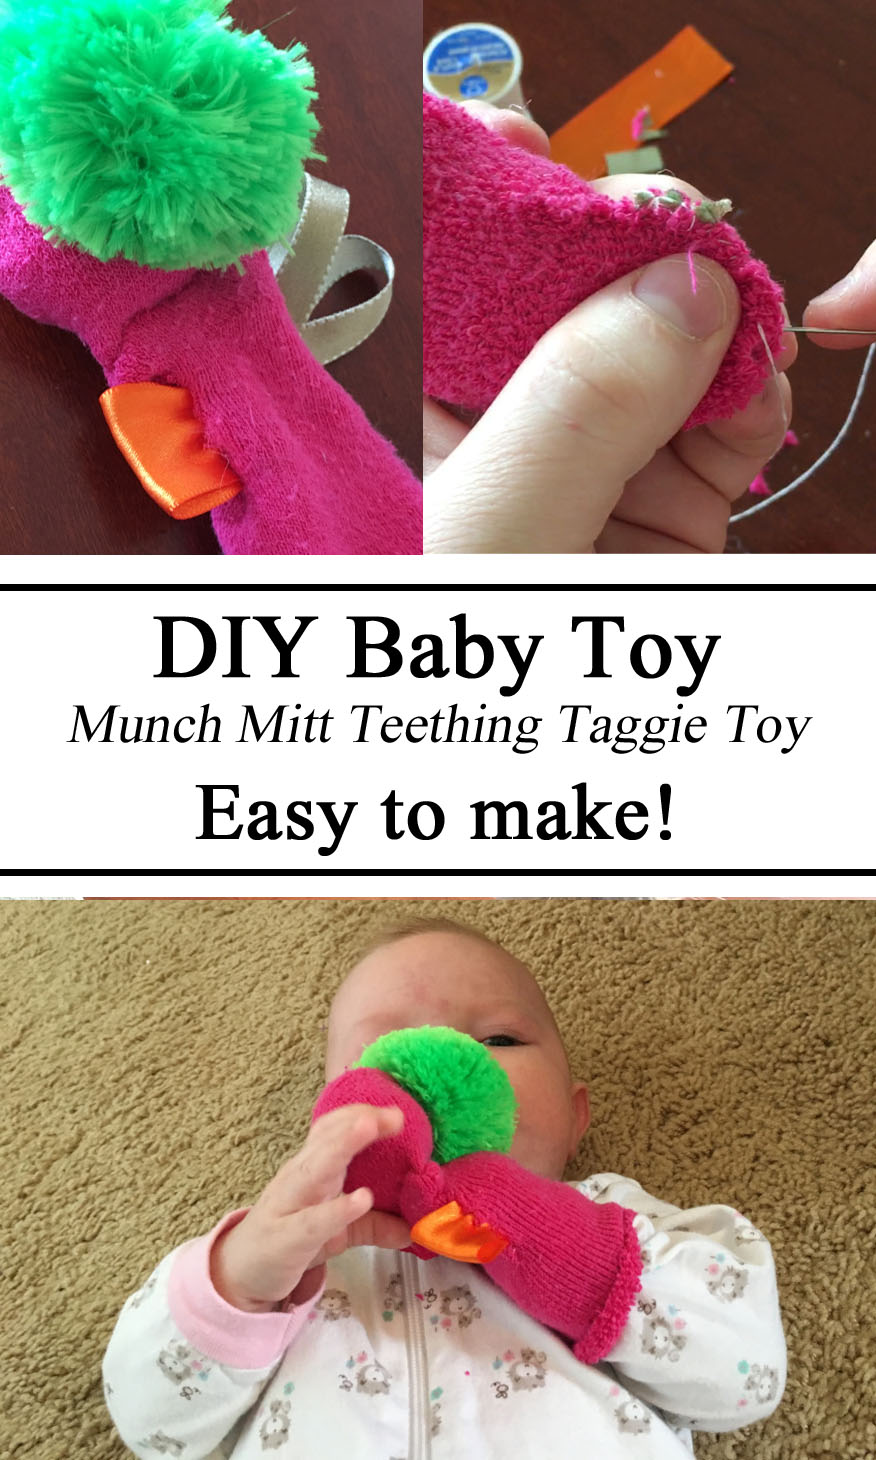 DIY baby Toy, Munch Mitt Teething Taggie Toy, Sock, Sewing, How to, Creative Mom, Infant, Teething Ideas Relief, Toys, Sensory, Stimulation Baby Babies